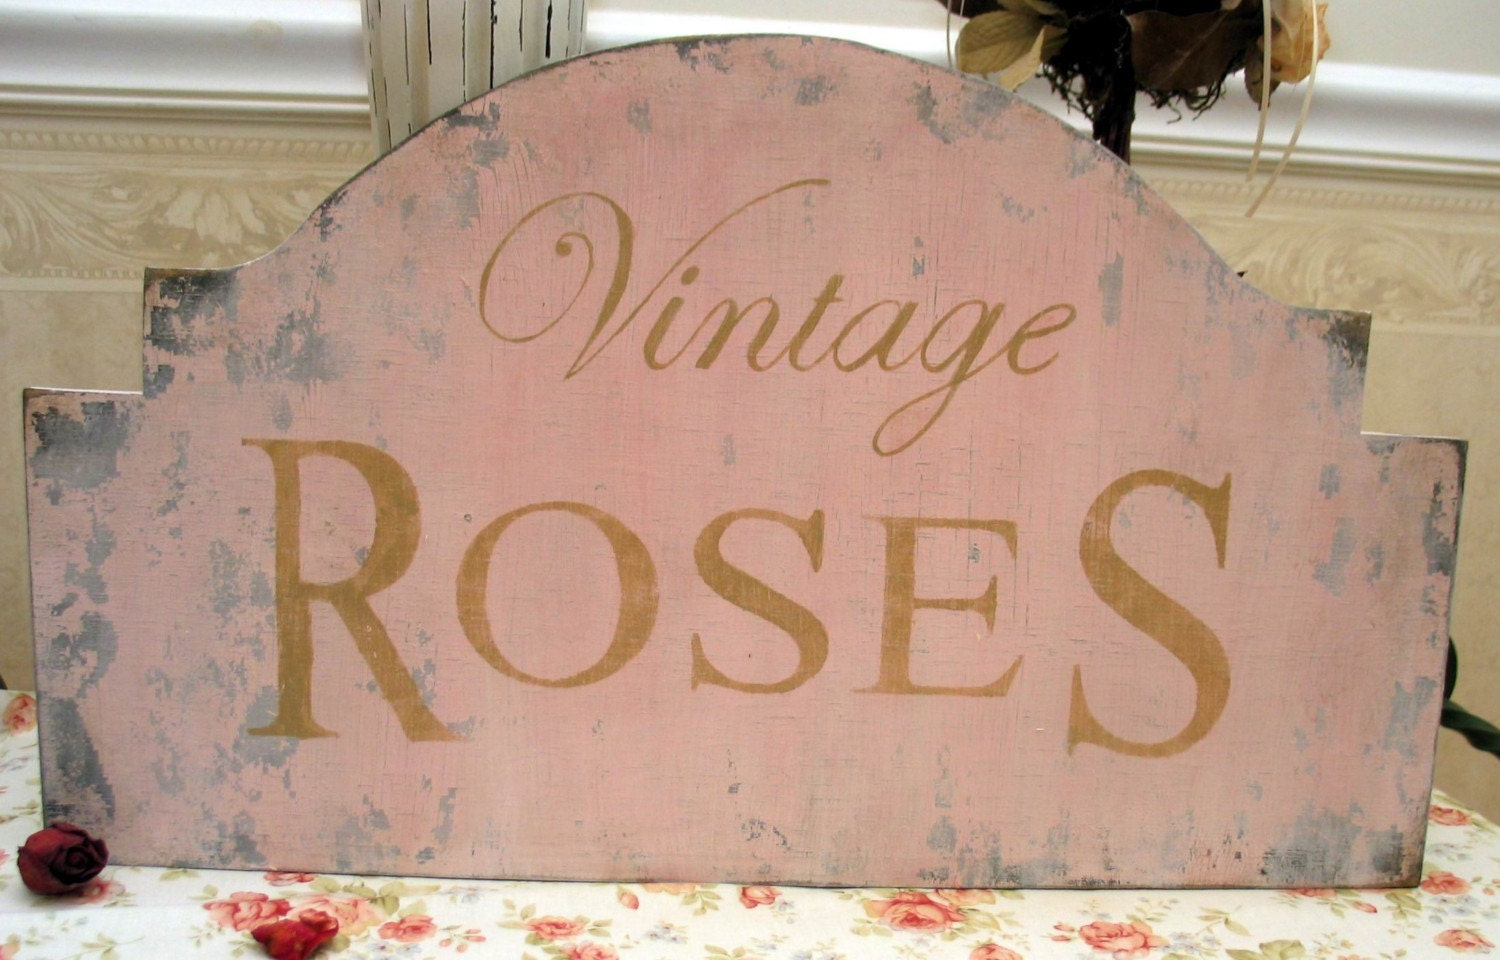 VINTAGE ROSES Shabby cottage chic chippy sign pink romantic